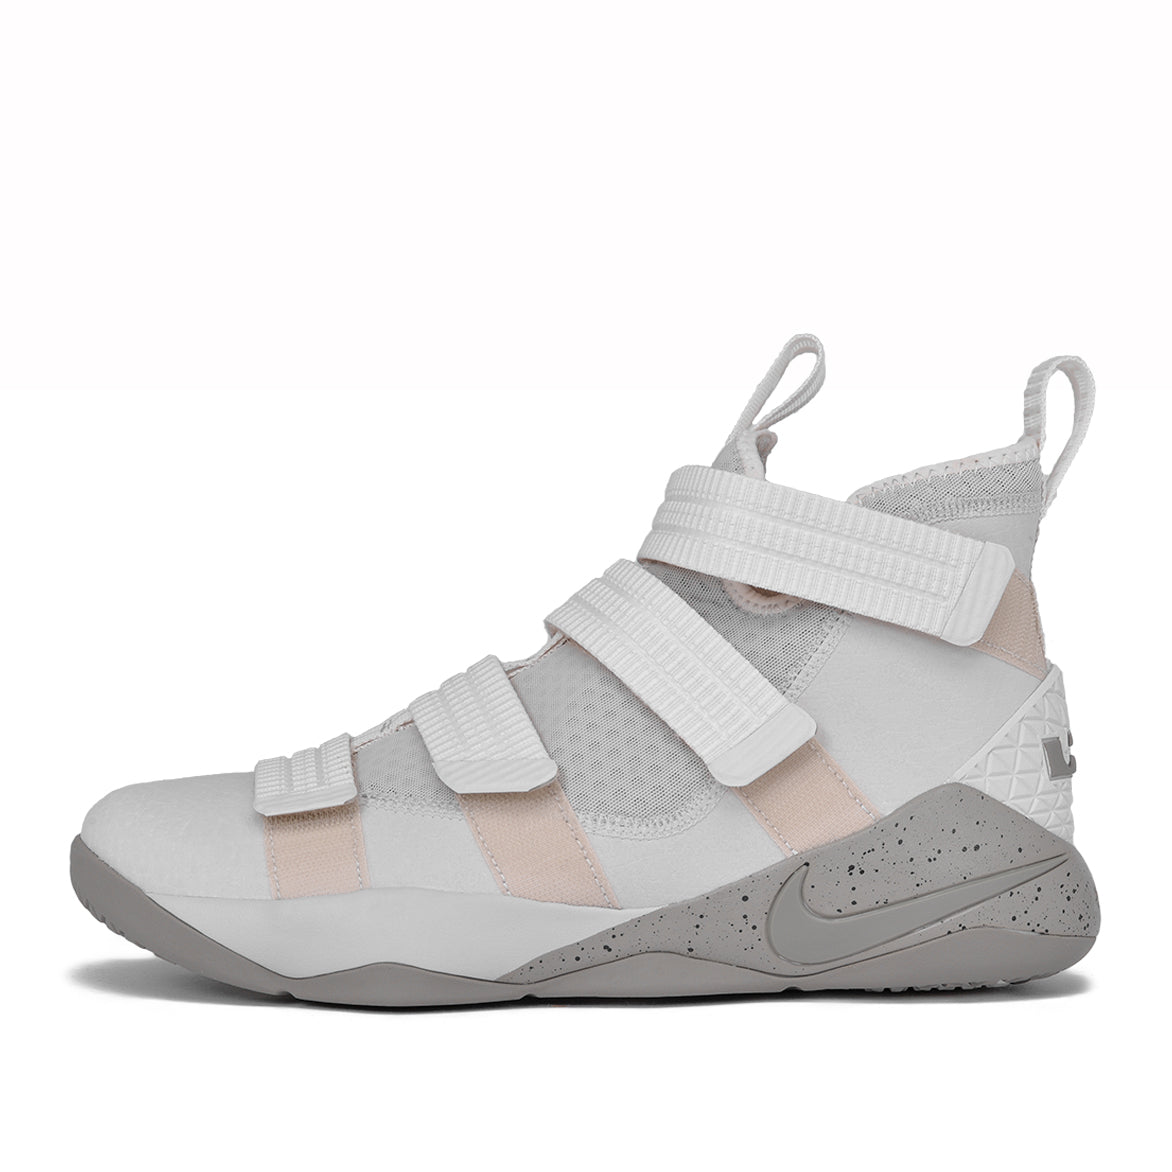 e6aeb0b939b5d LEBRON SOLDIER XI SFG - LIGHT BONE   DARK STUCCO